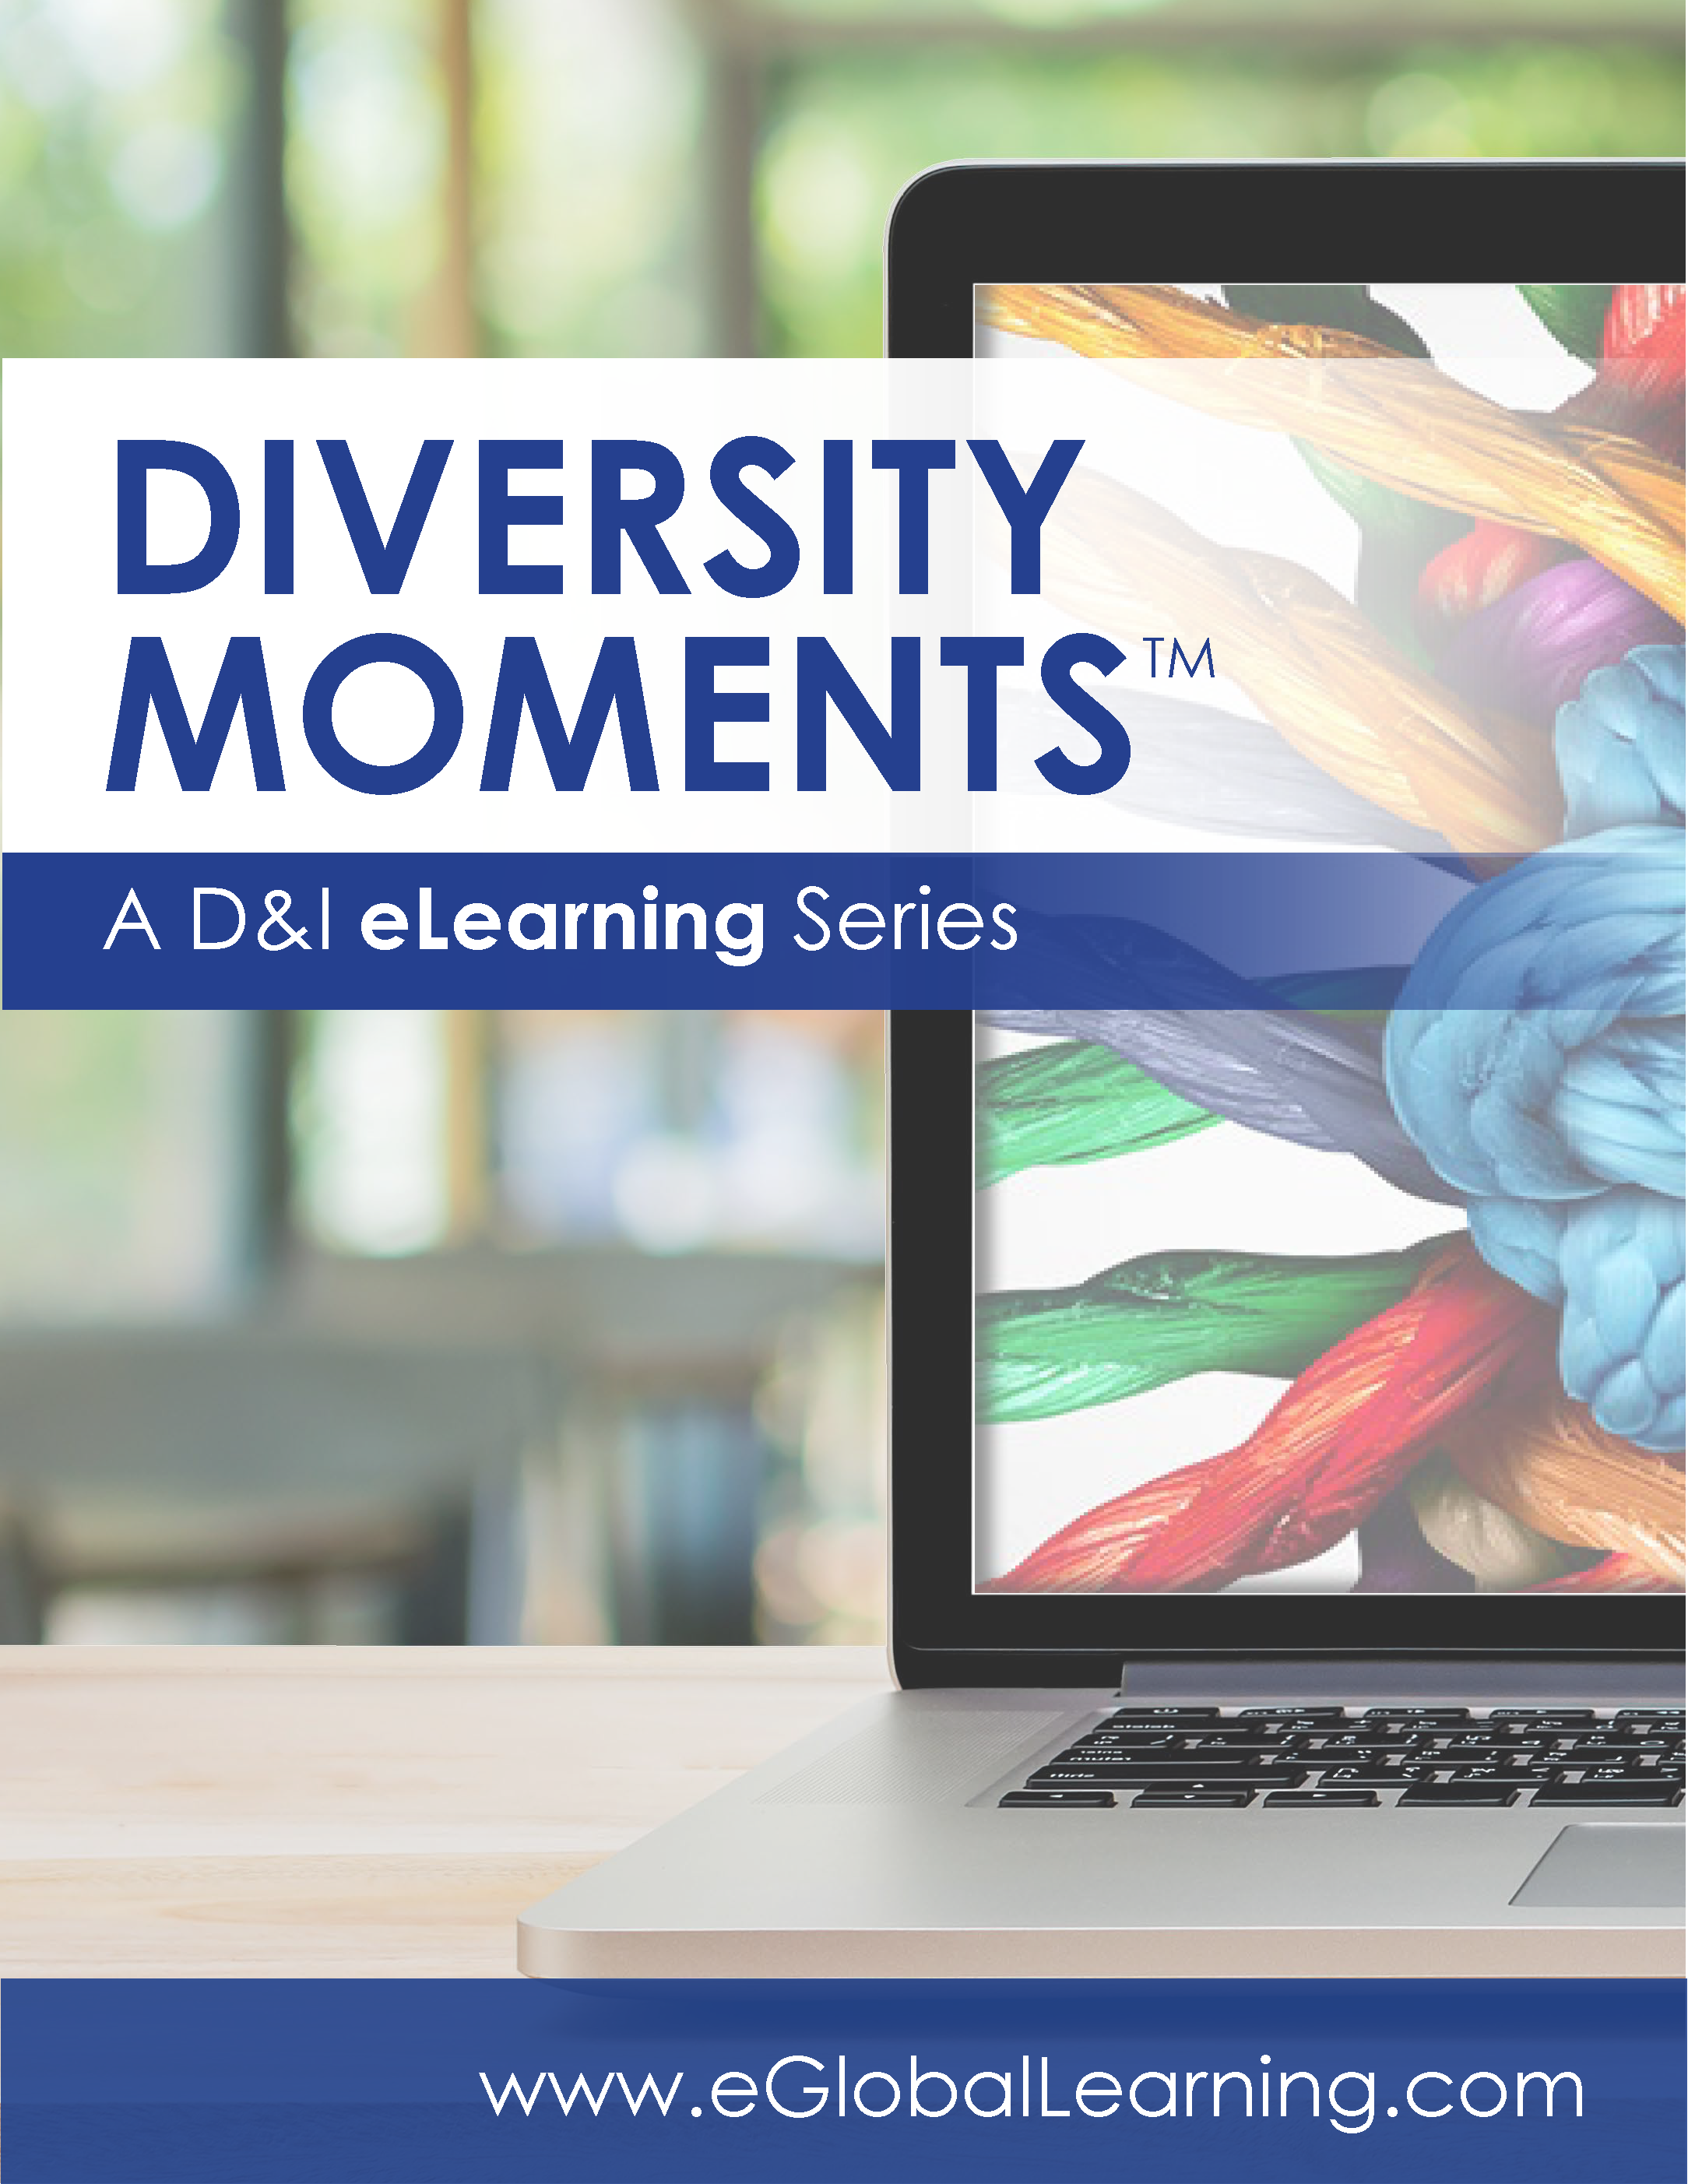 Global Learning - Diversity Moments - Brochure Cover